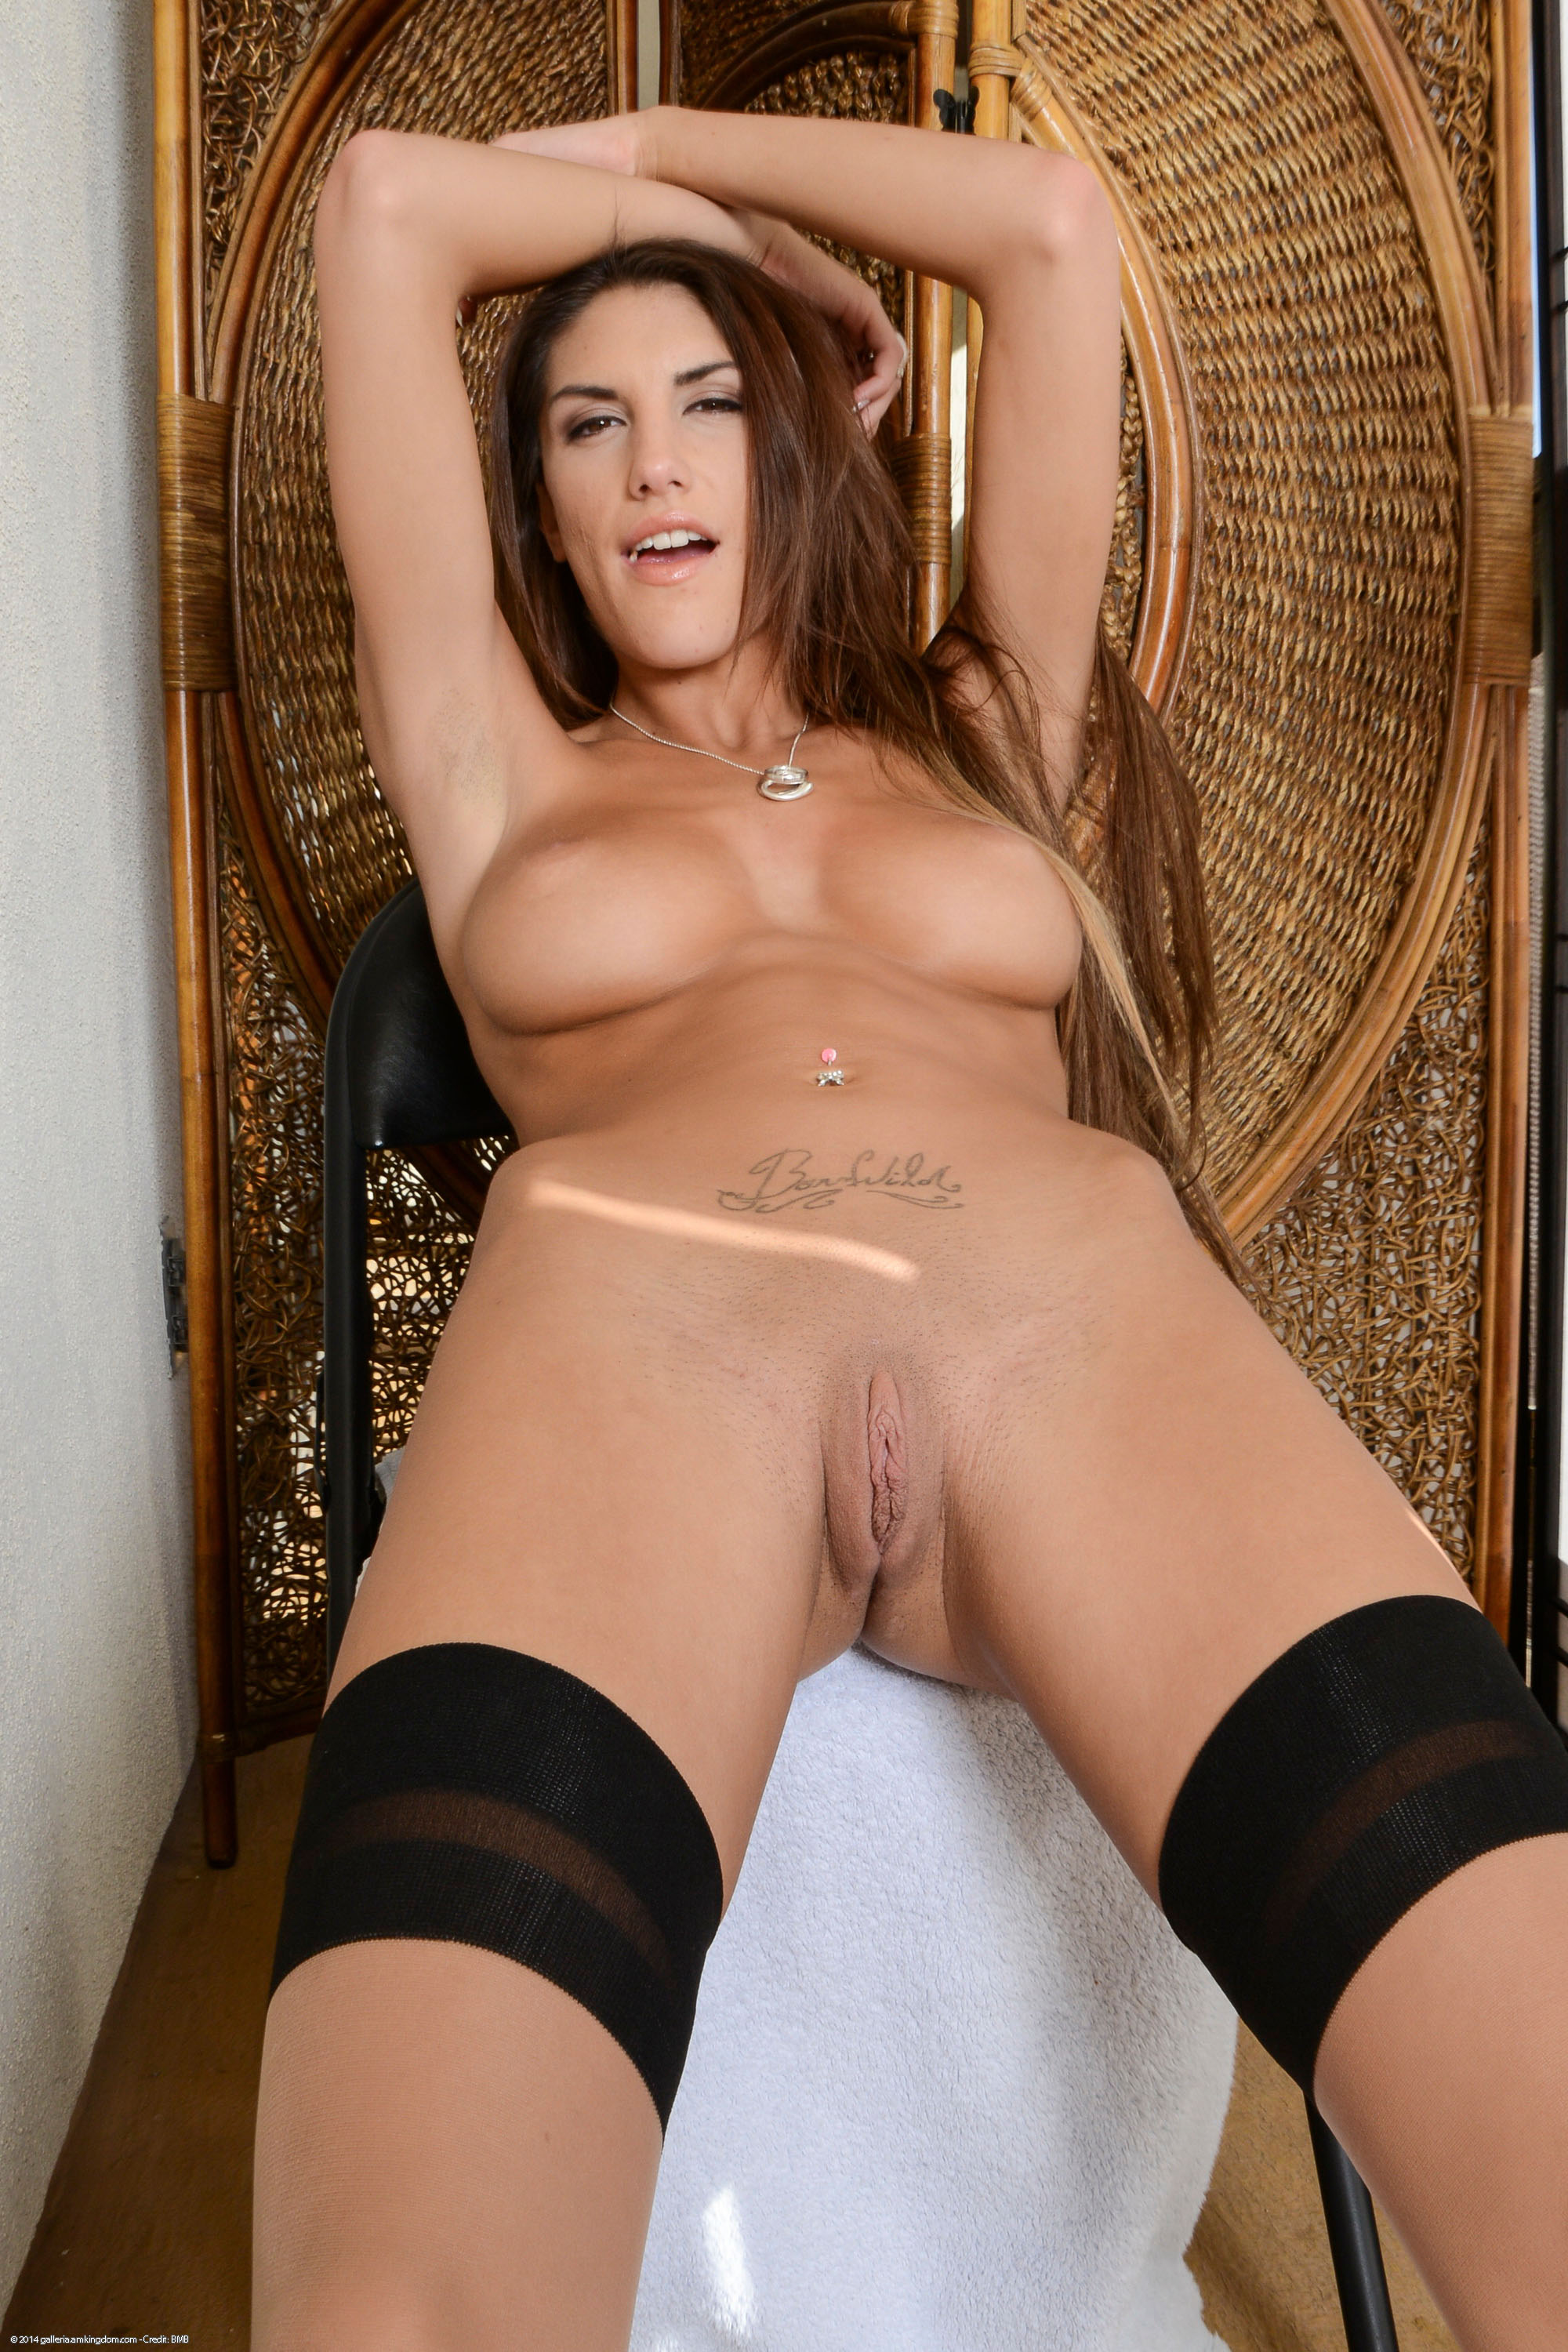 August ames hairy